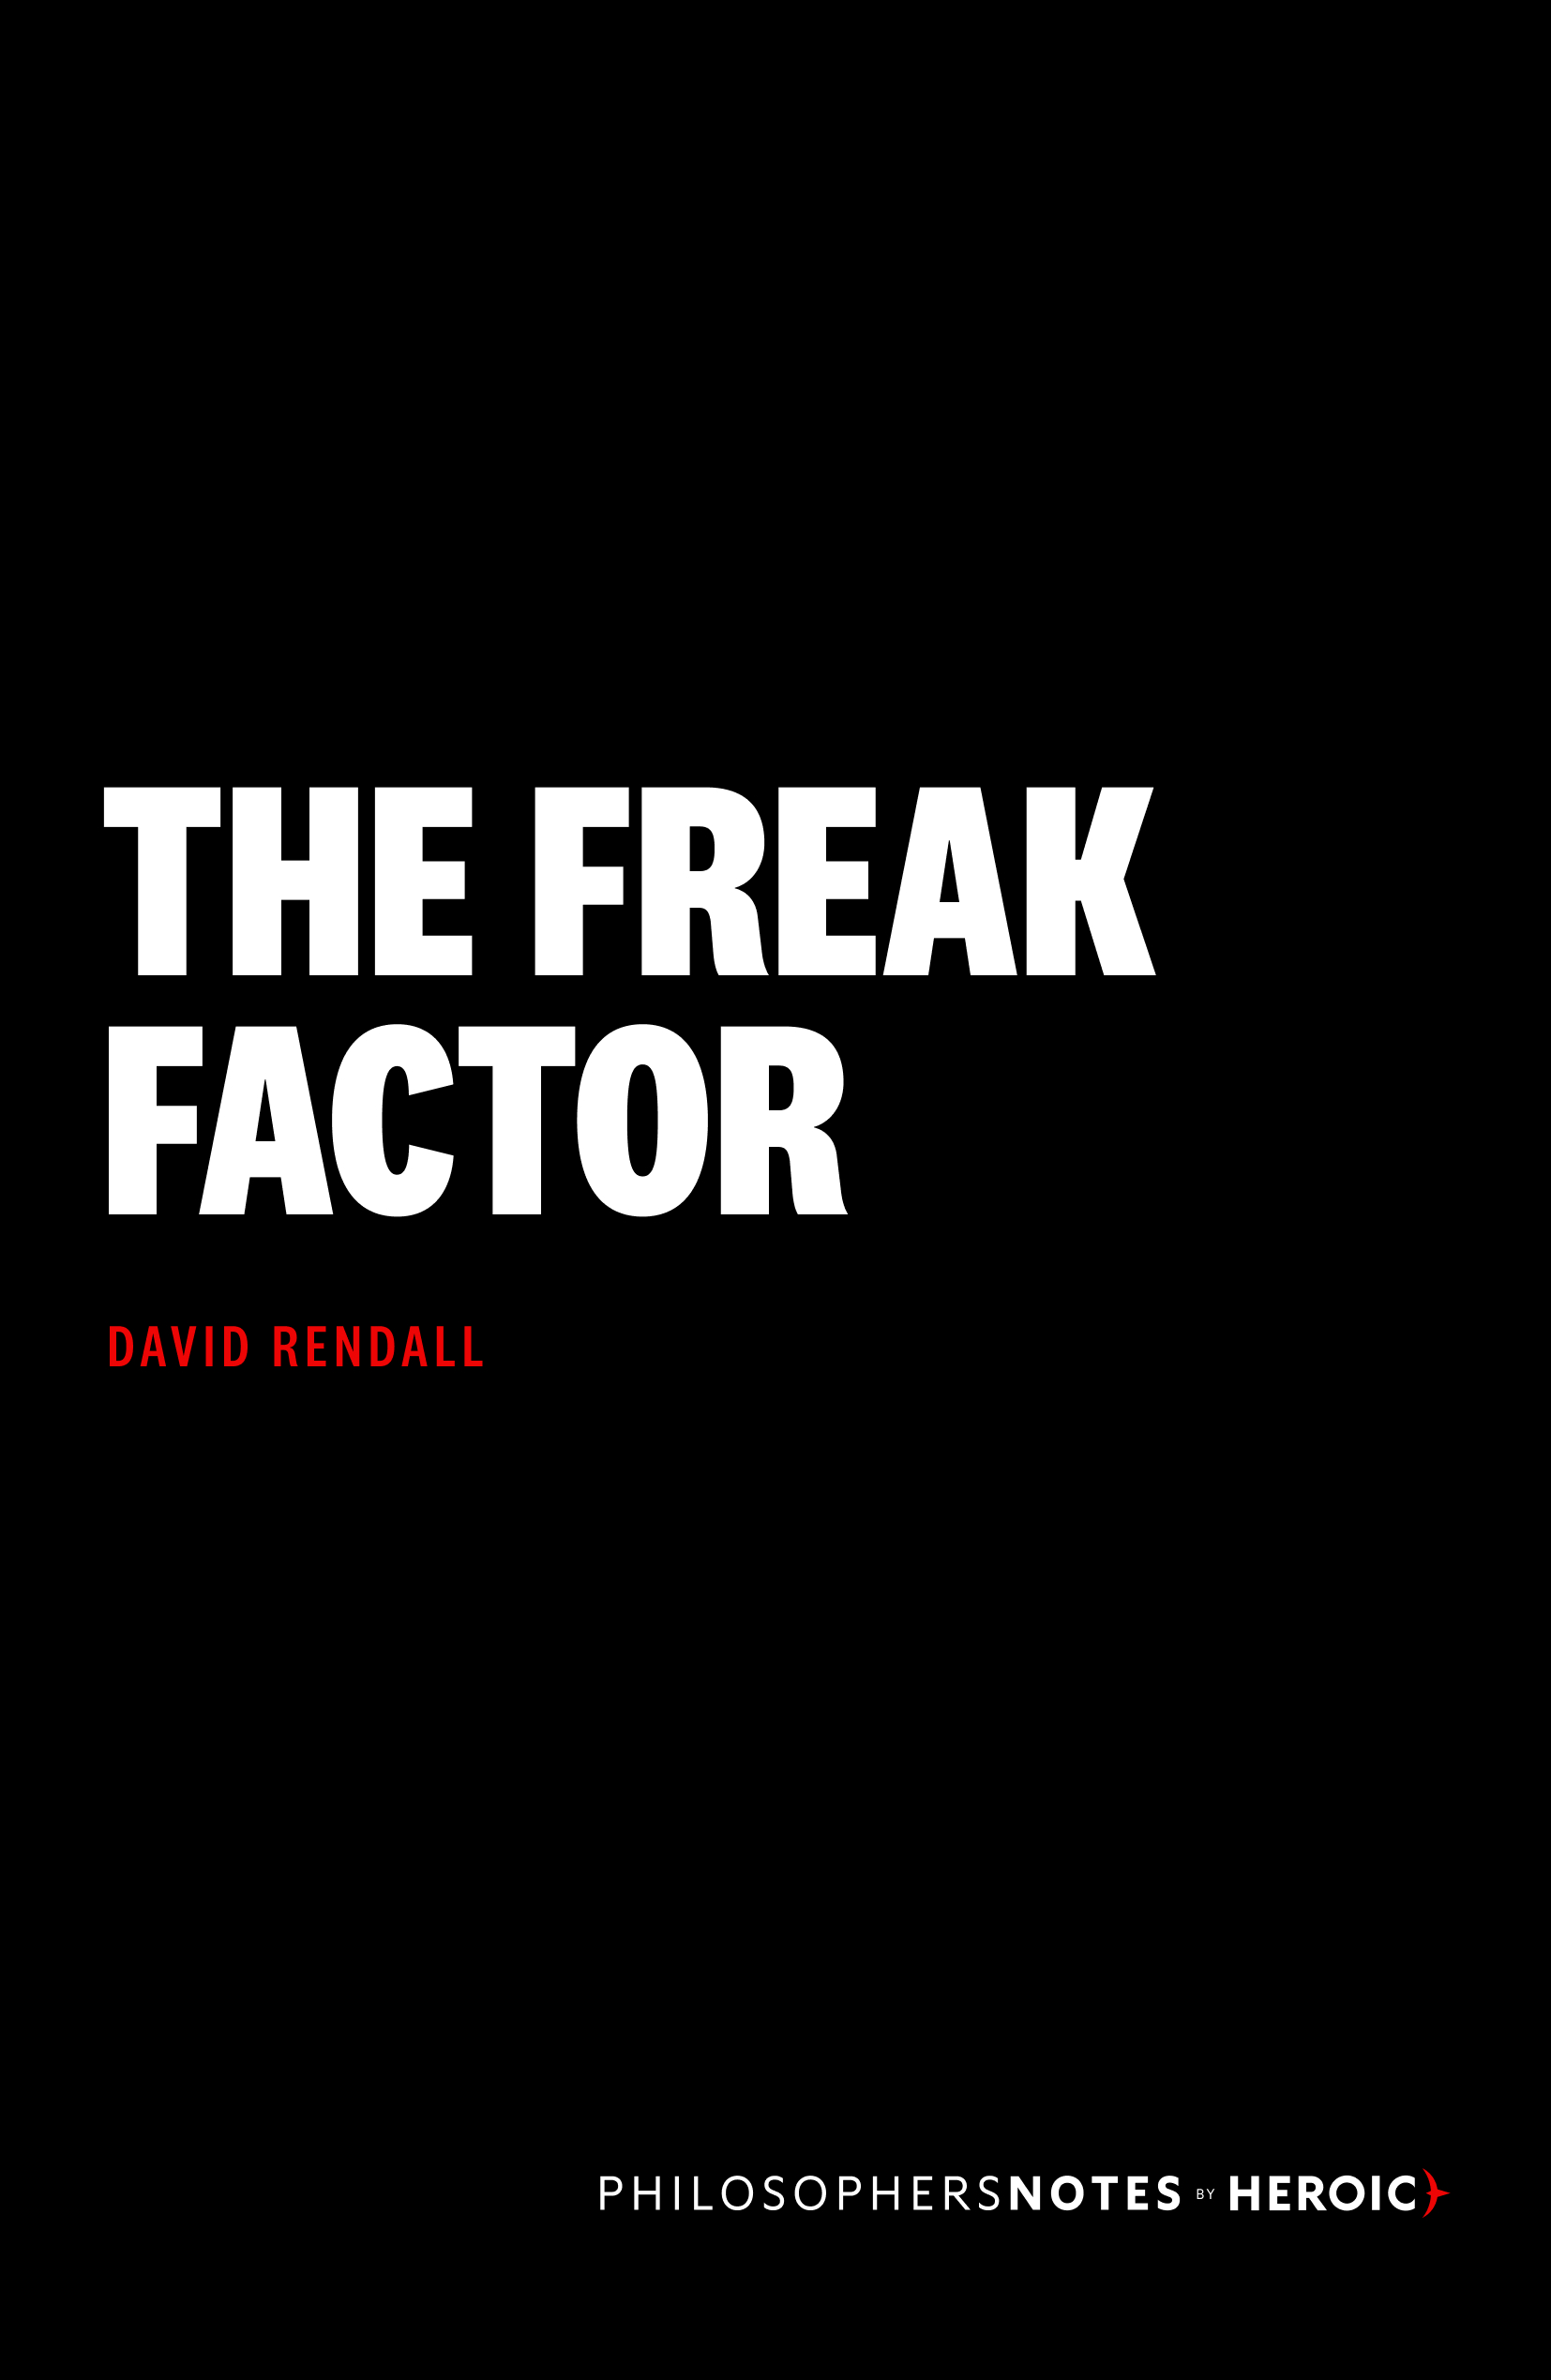 The Freak Factor